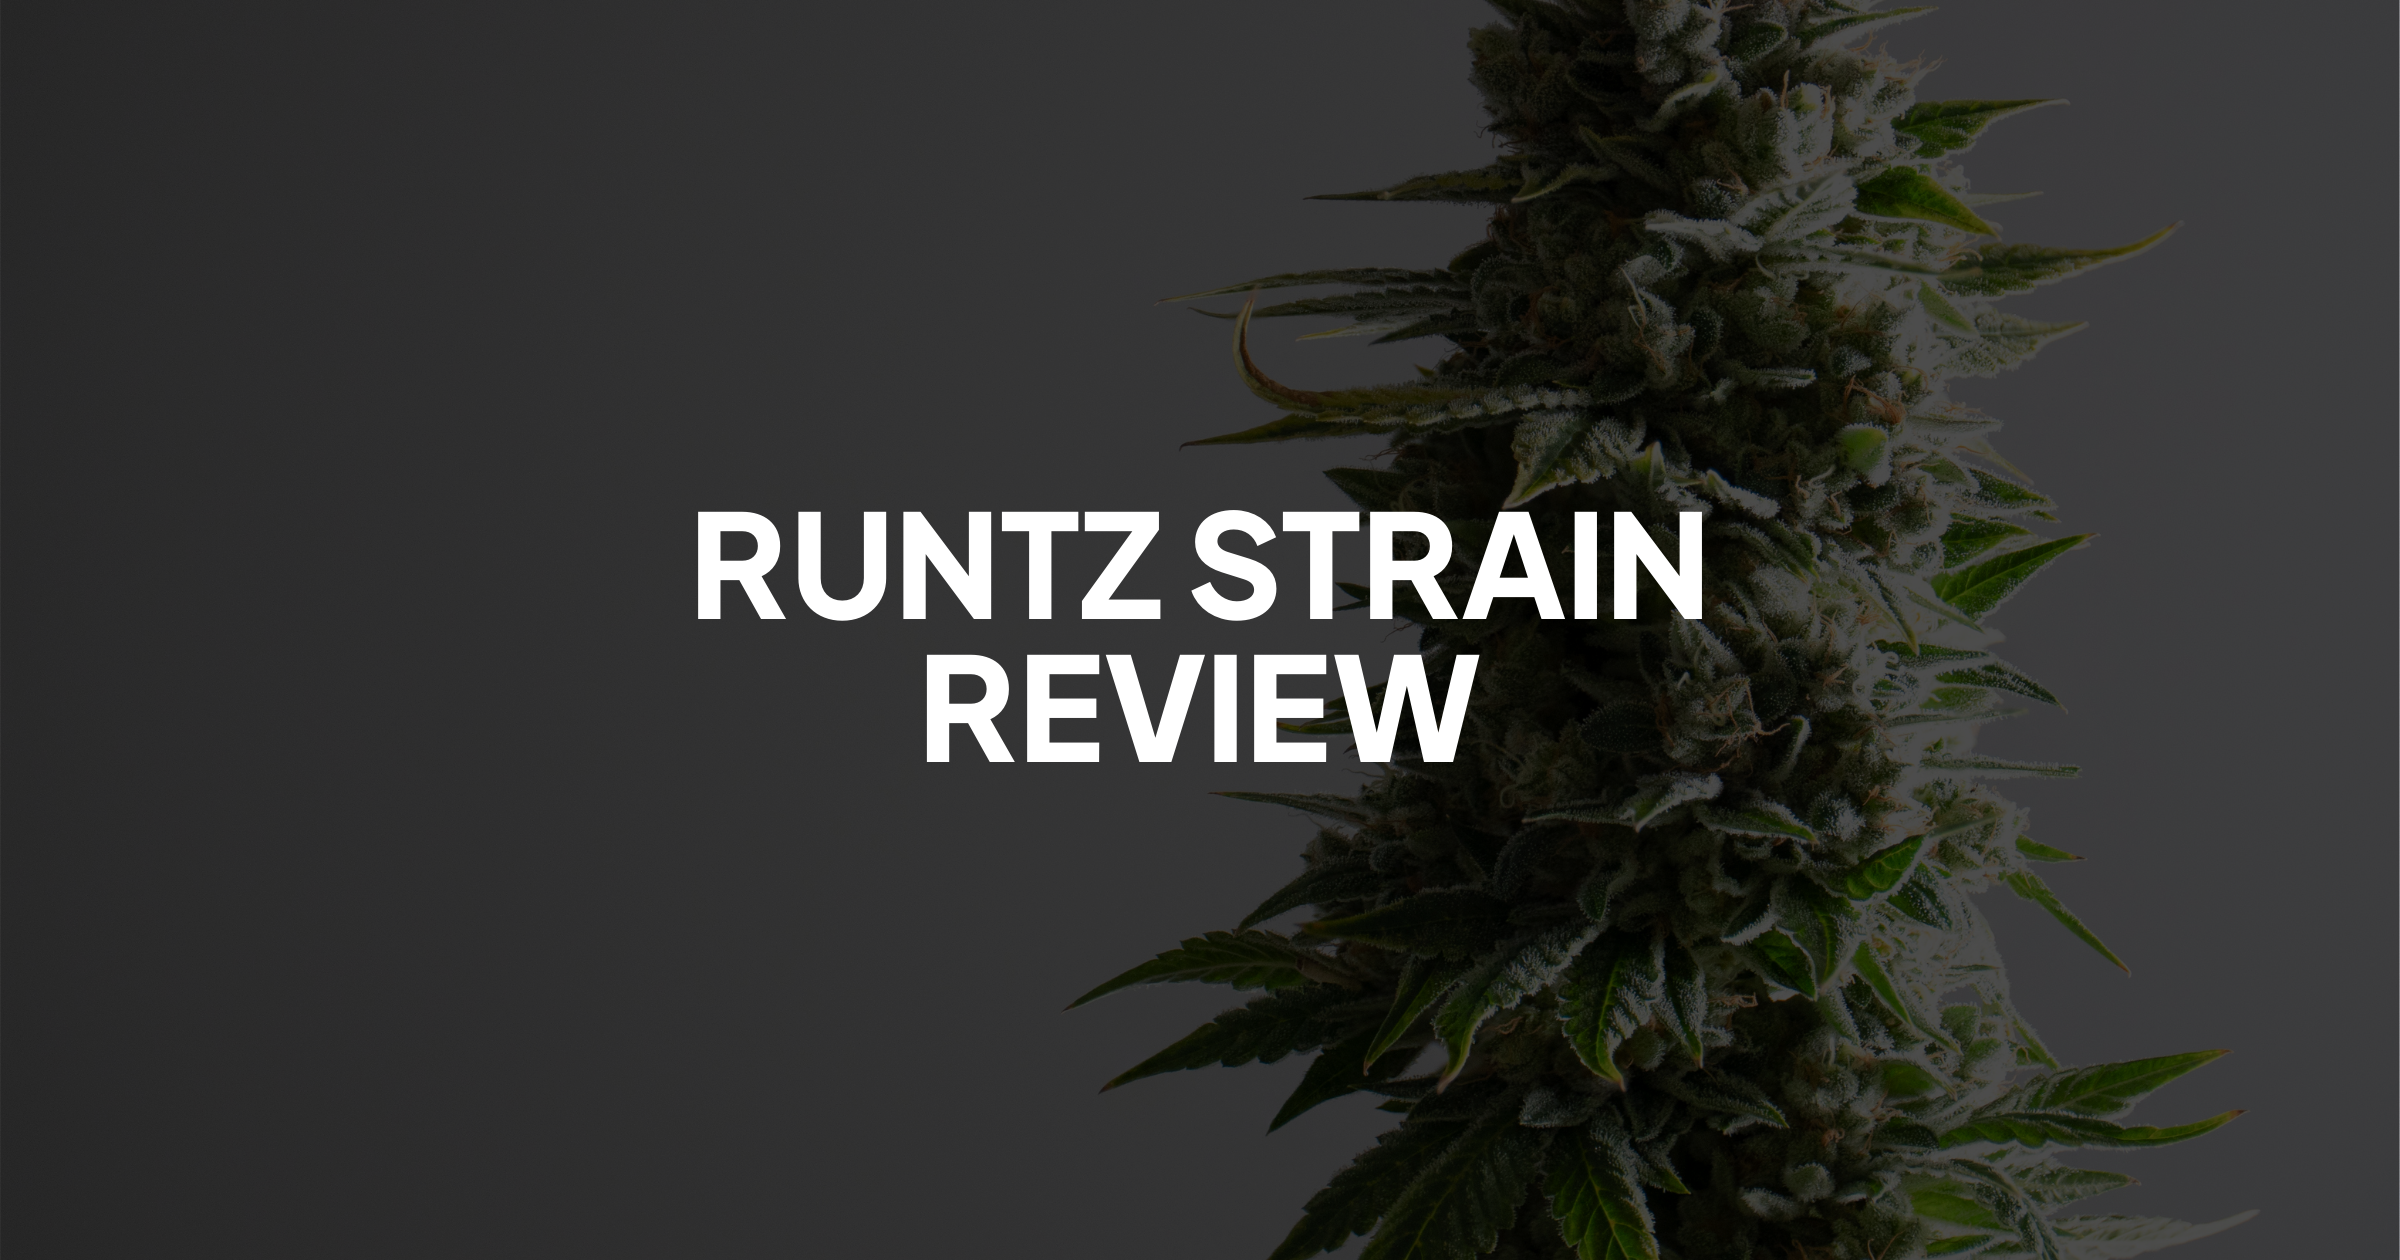 Runtz Strain Review